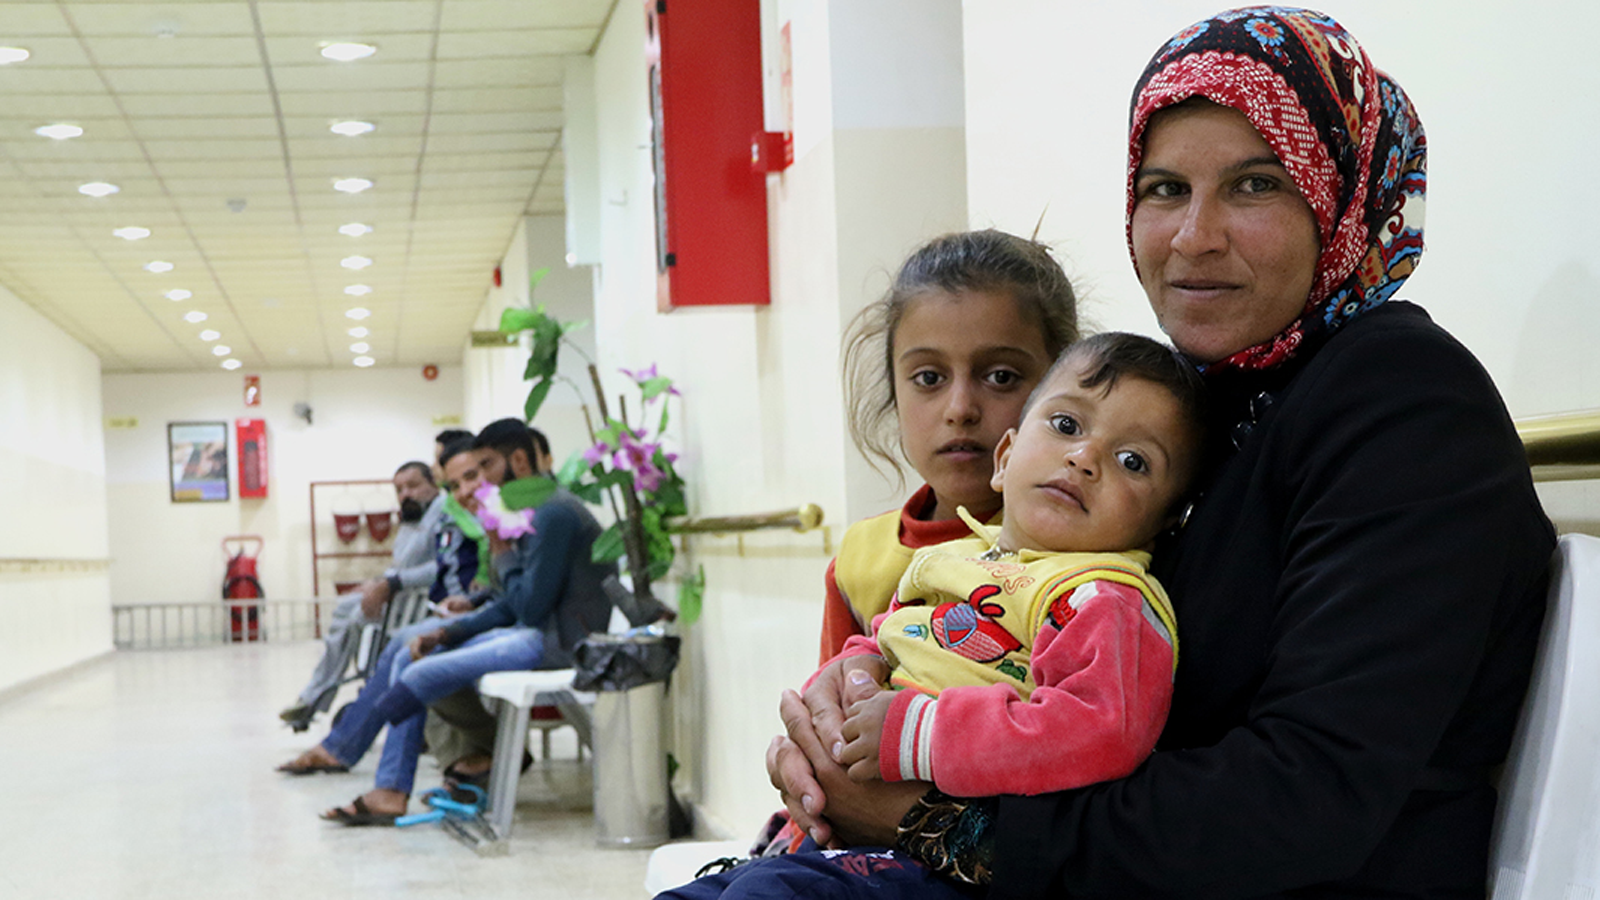 Iraq | Aiding Iraqis and Syrians Fleeing War